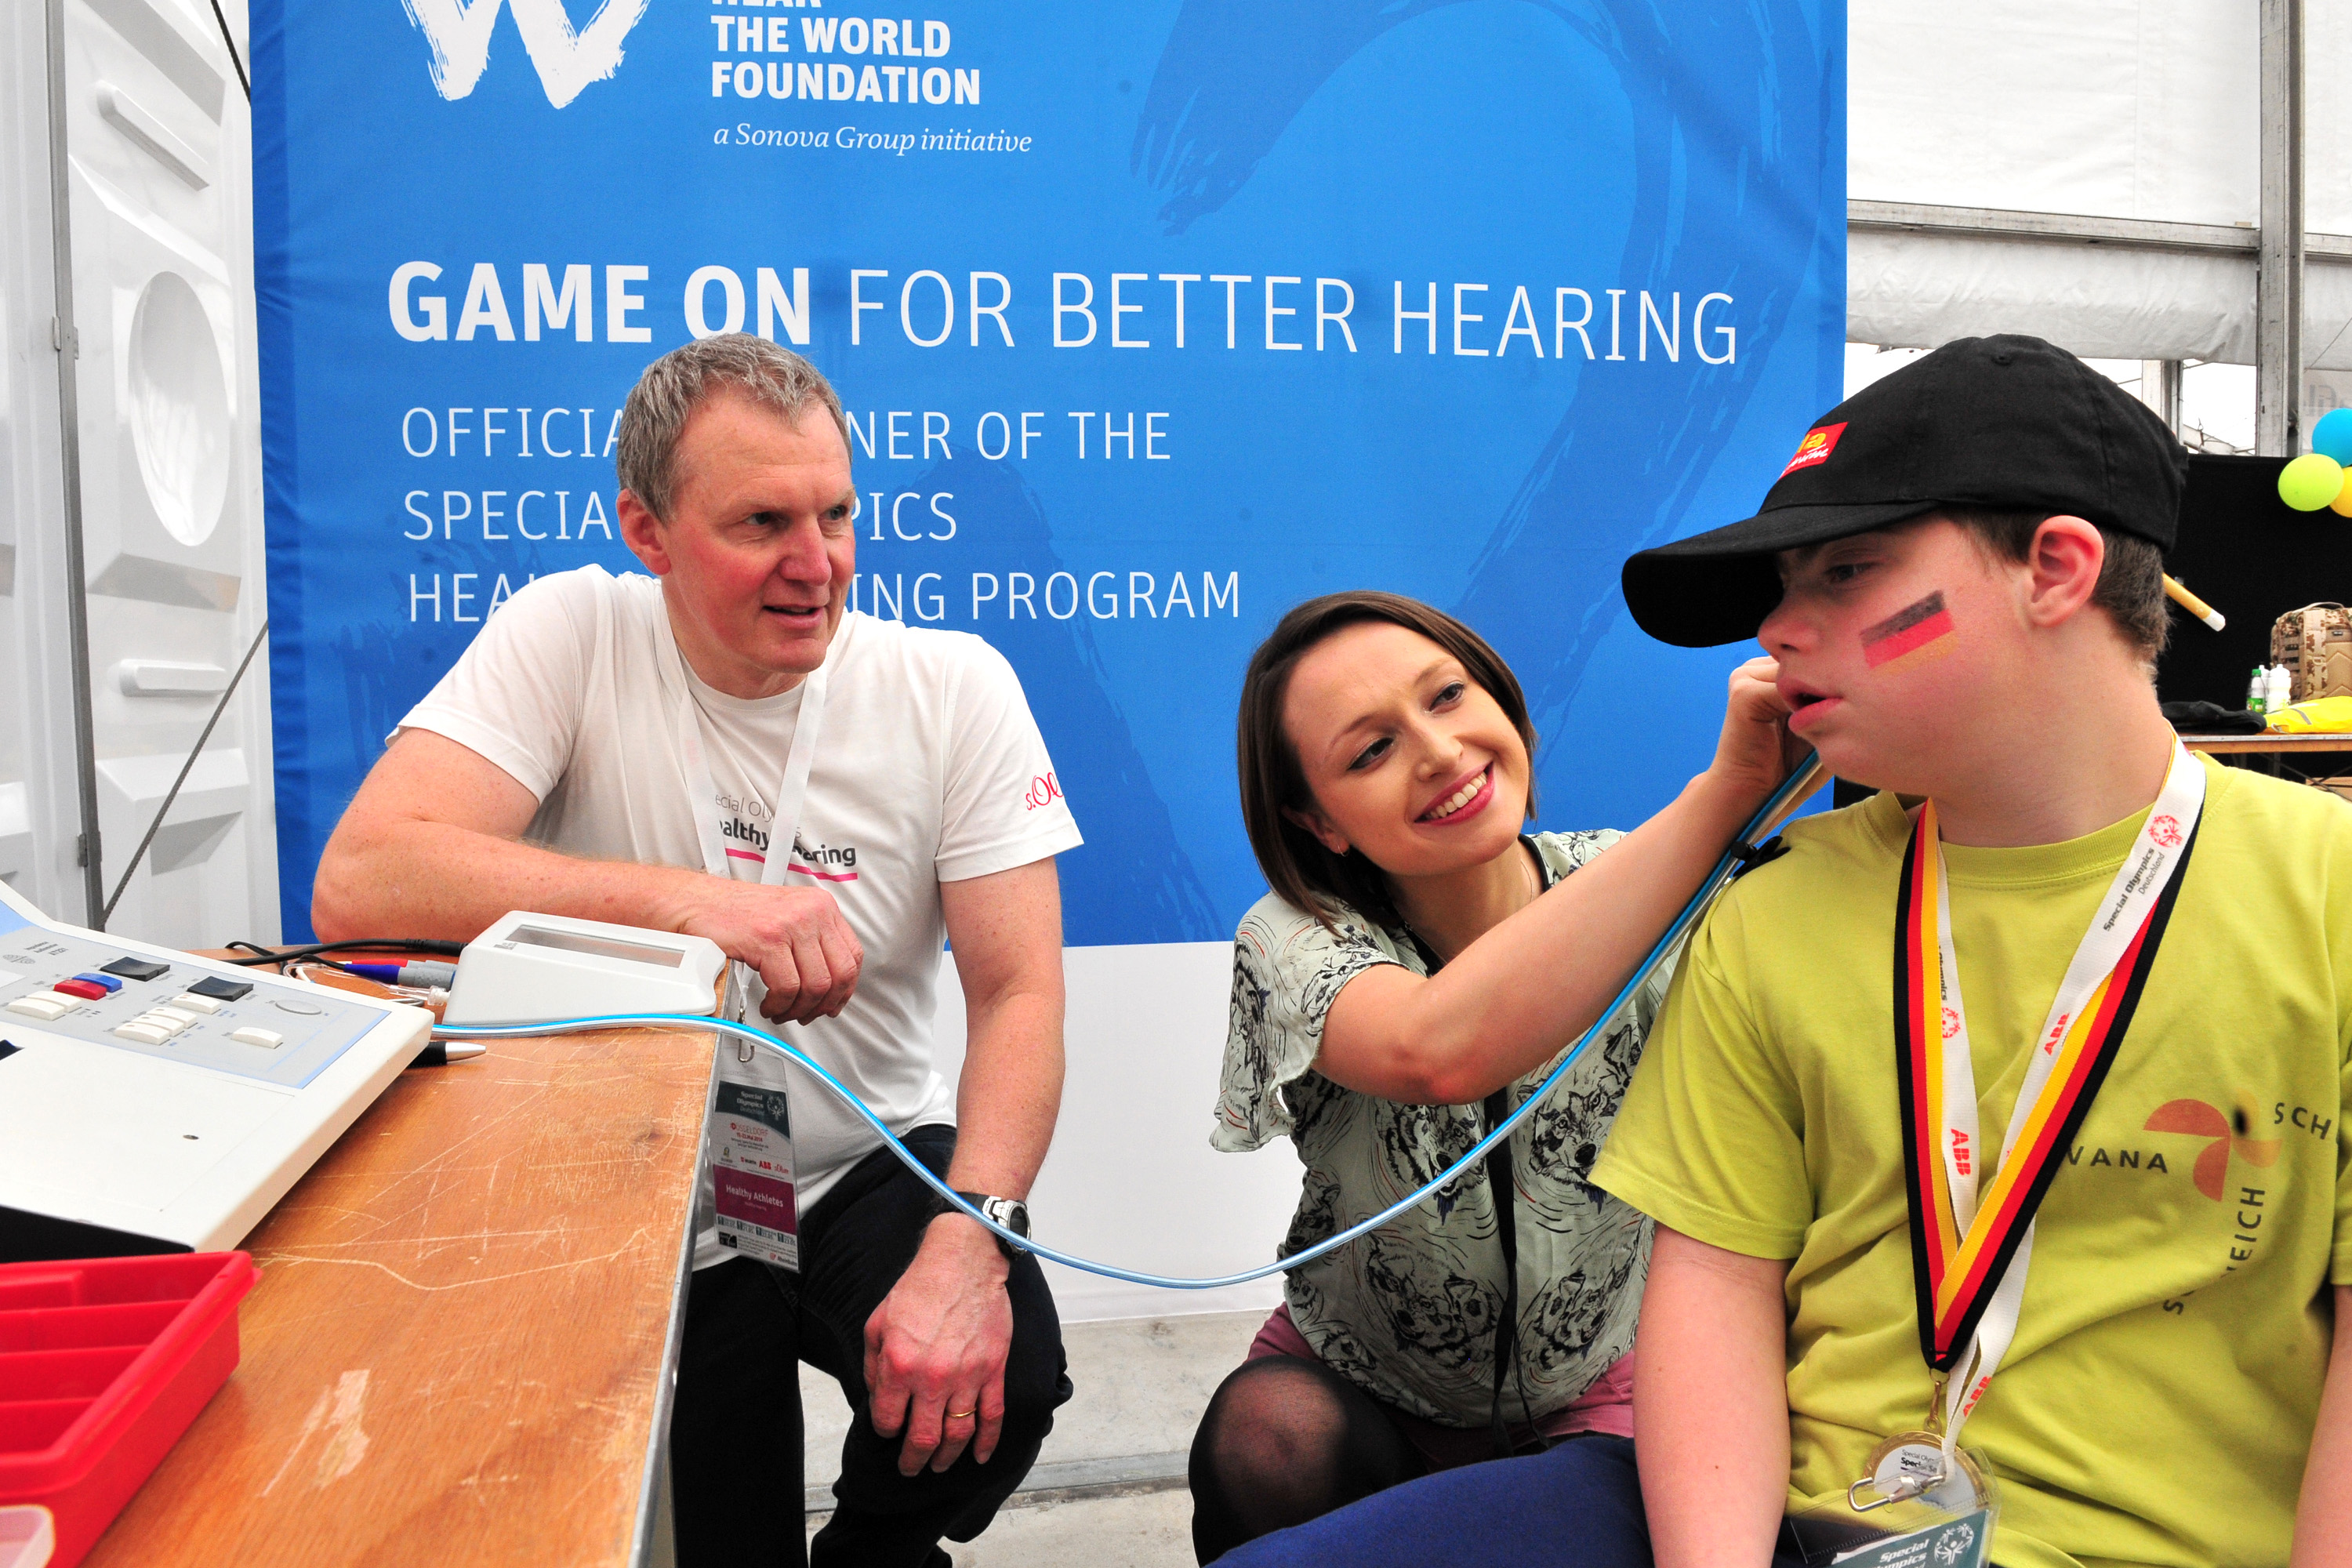 Free-hearing-aids-for-athletes-Hear-the-World-Foundation-03